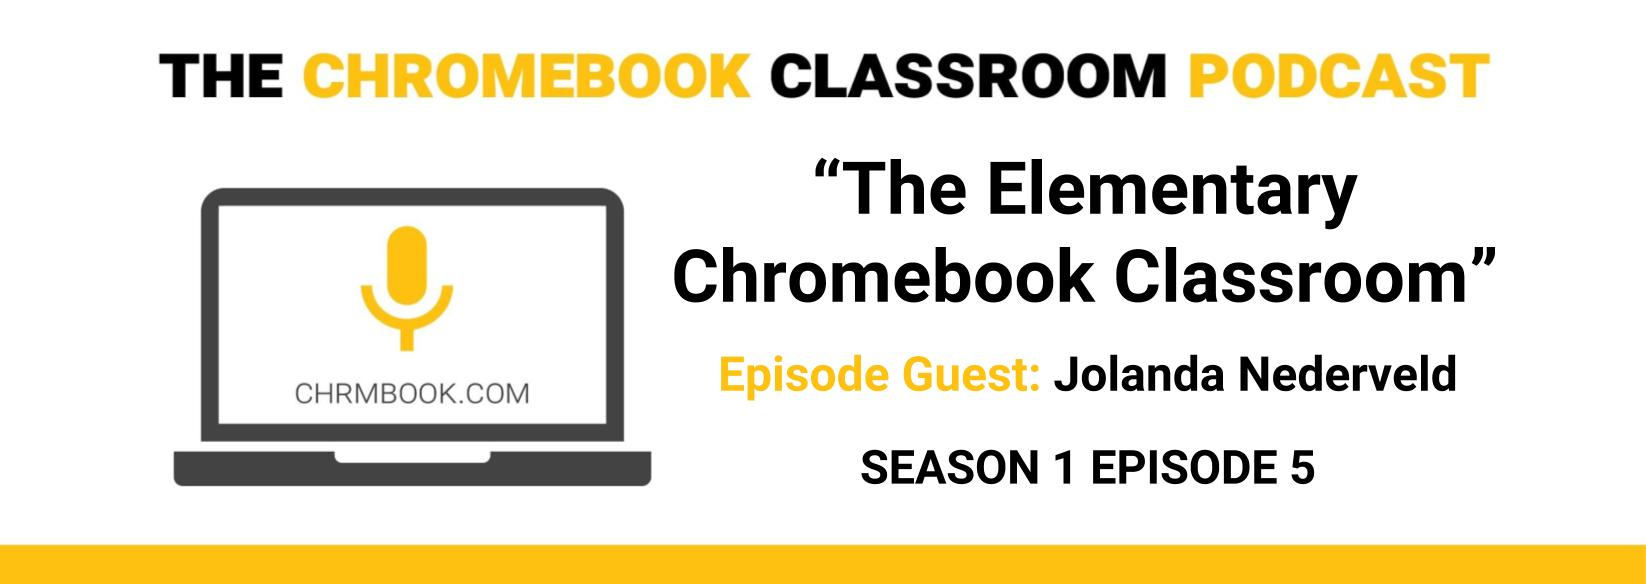 Chromebooks In Elementary Classrooms With @NedTechOP